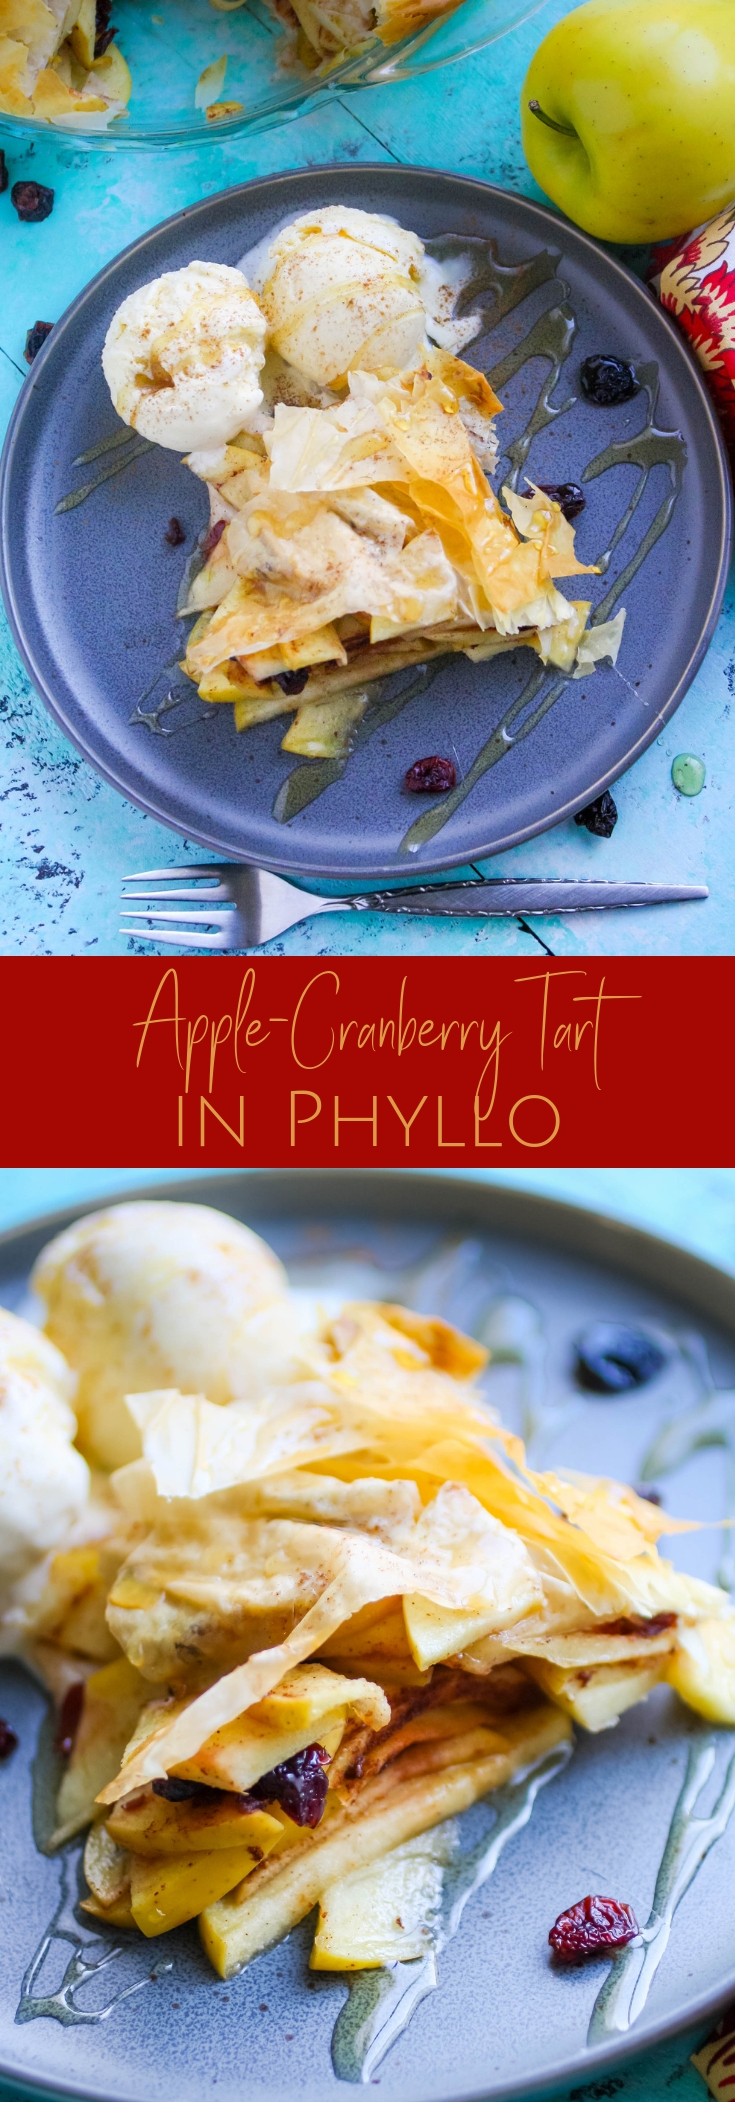 Apple-Cranberry Tart in Phyllo is a treat everyone will enjoy! Apple-Cranberry Tart in Phyllo is flaky and delicious!